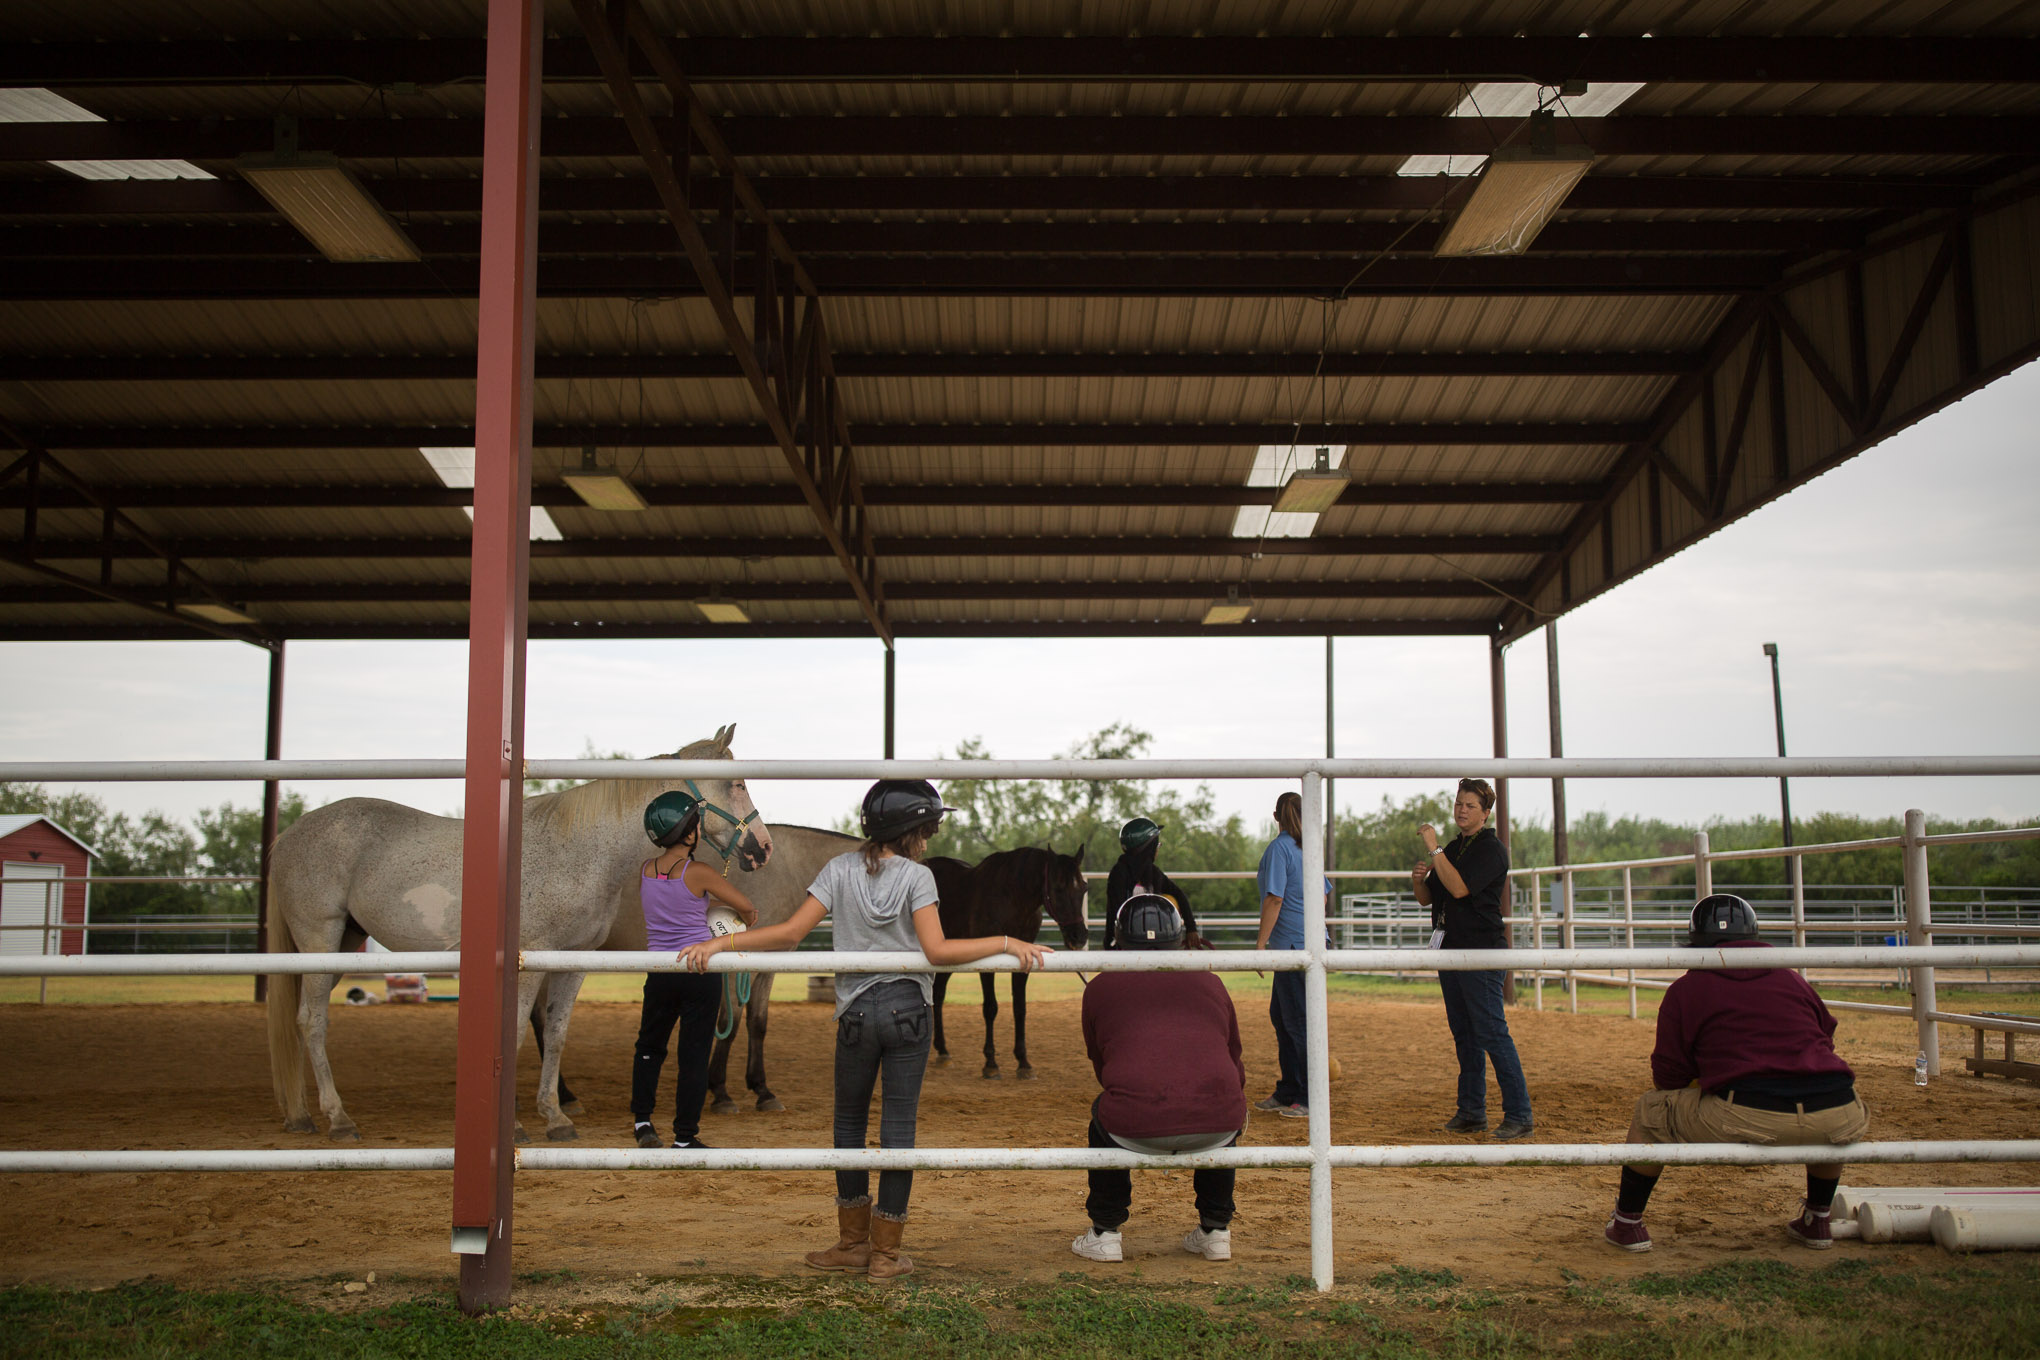 Crossroads participants take a break as they receive instruction during equine therapy at Children and Horses Always Produce Success (CHAPS). Photo by Scott Ball.